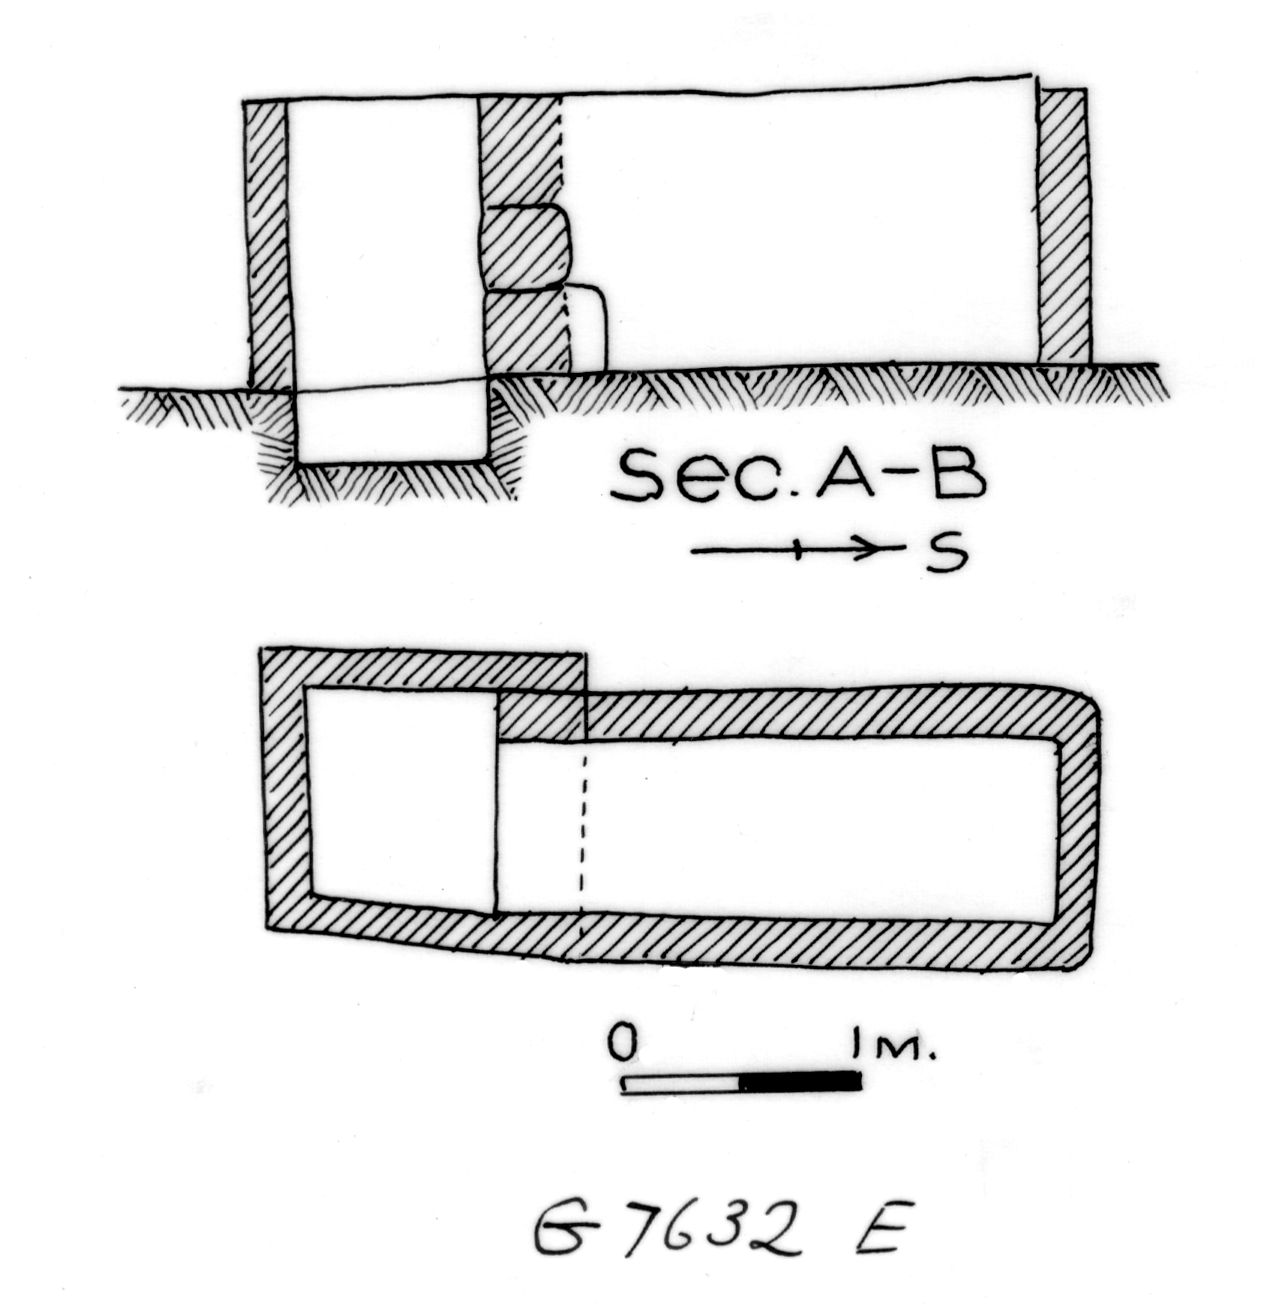 Maps and plans: G 7632, Shaft E